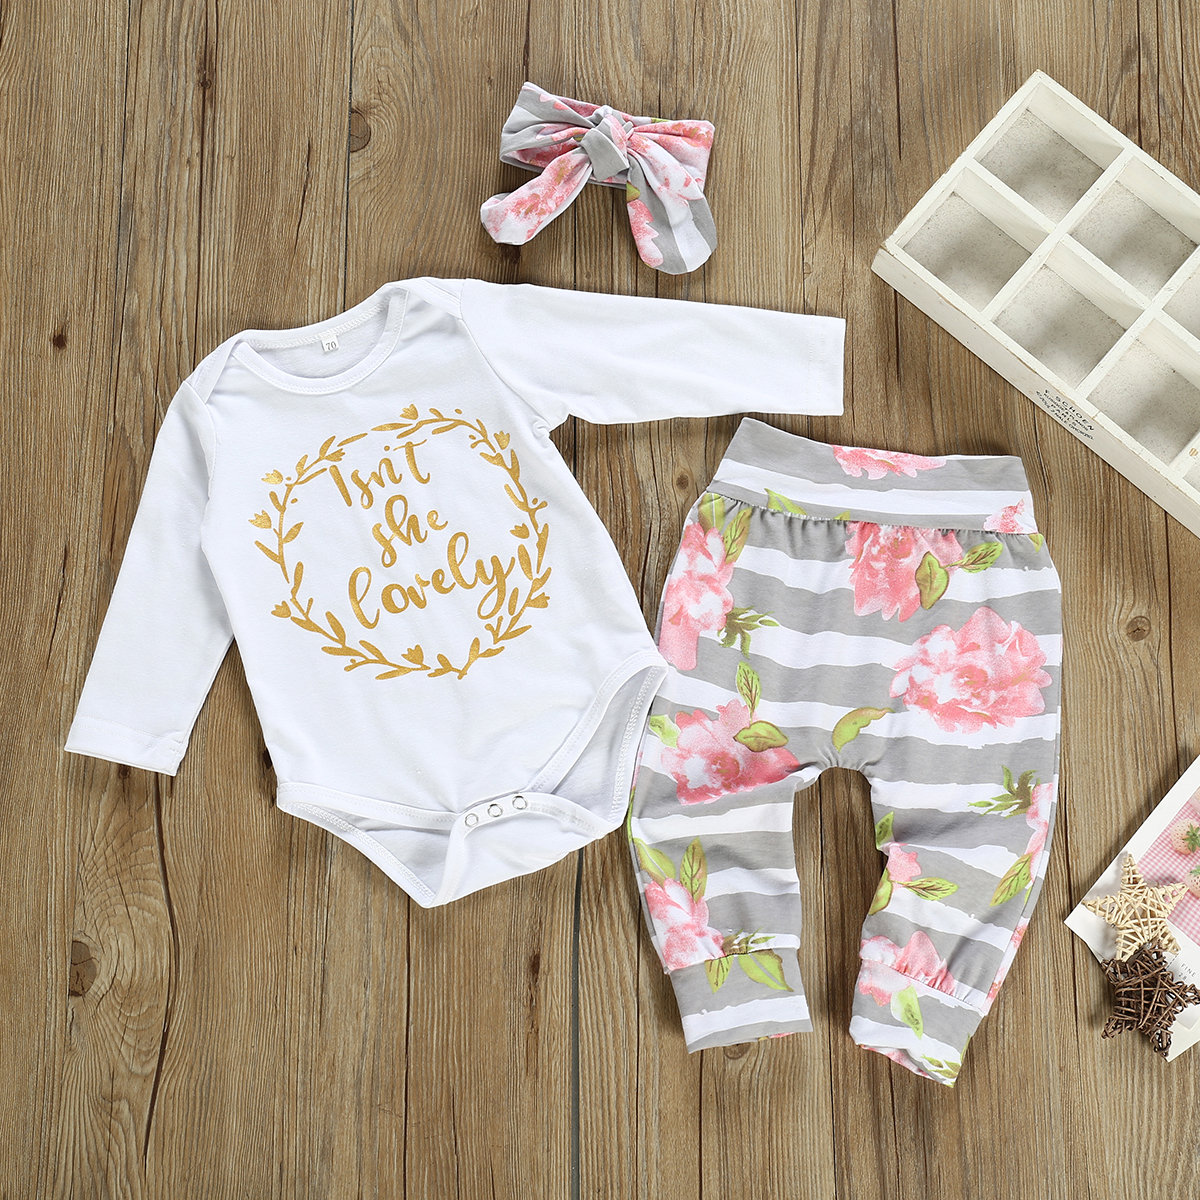 Newborn Baby Girls 0-12M Clothes 3Pcs Romper Tops Flower Pants Headband Outfits